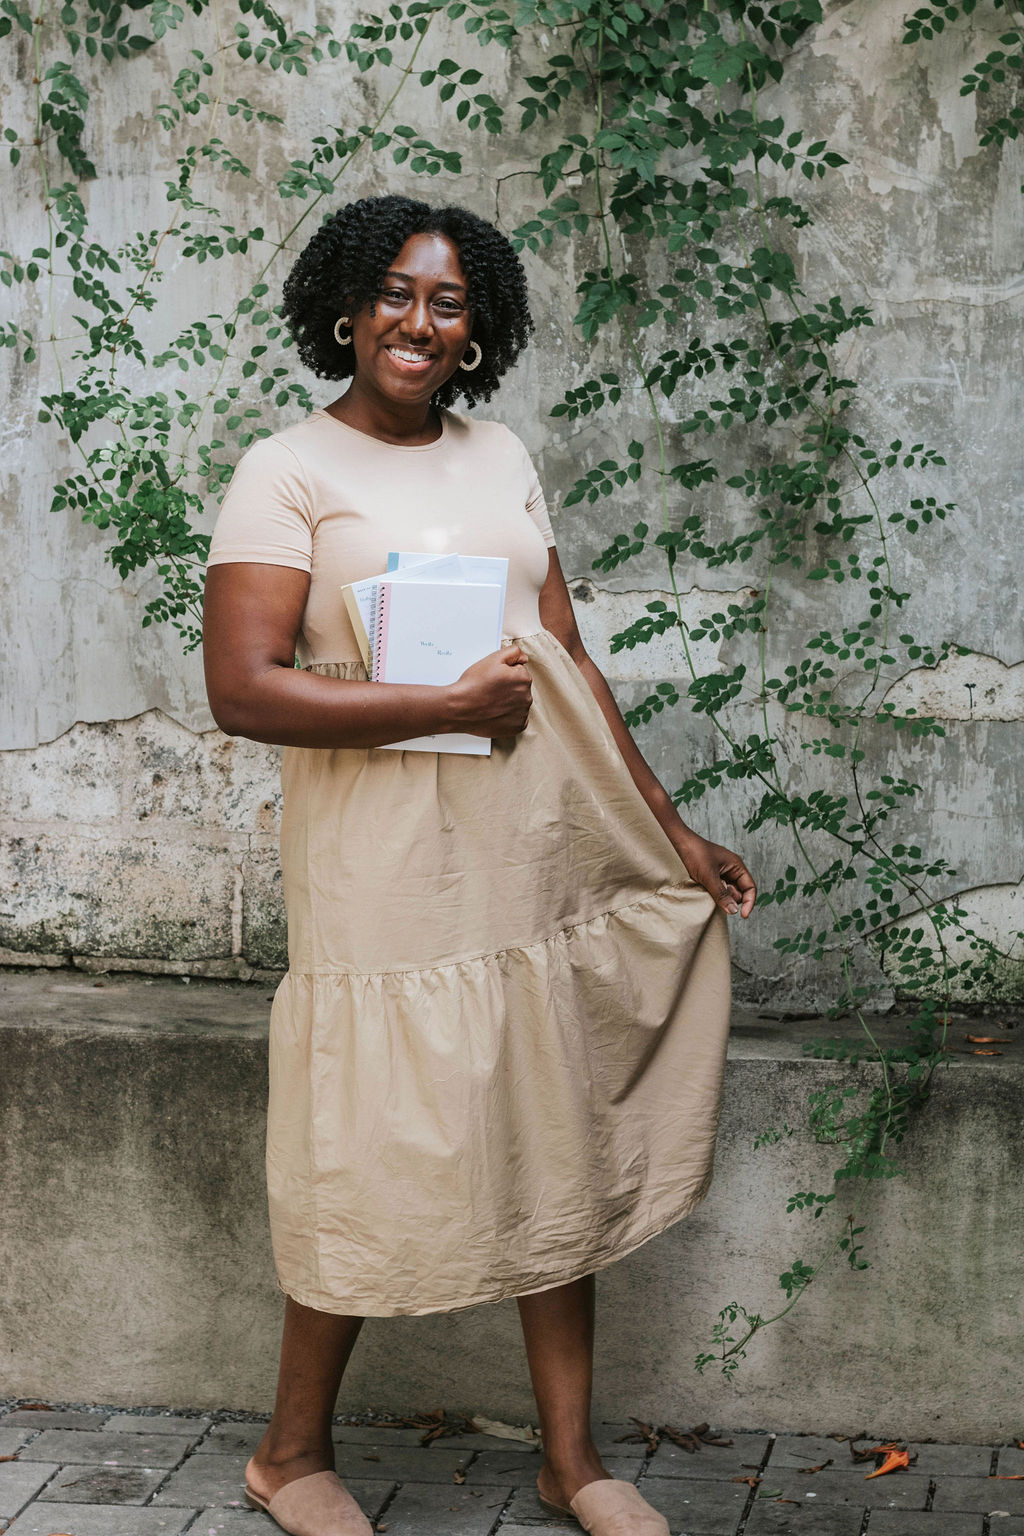 Ashley Brown of Routine & Things standing in front of a wall with greenery growing on it holding notebooks in her hand